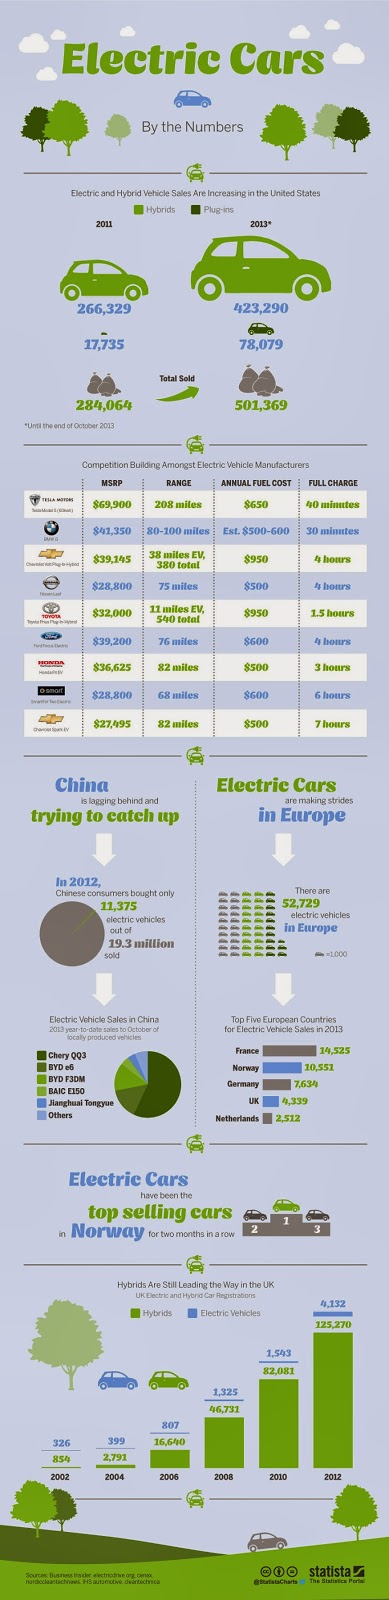 https://d28wbuch0jlv7v.cloudfront.net/images/infografik/normal/chartoftheday_1787_electric_and_hybrid_vehicles_by_the_numbers_n.jpg